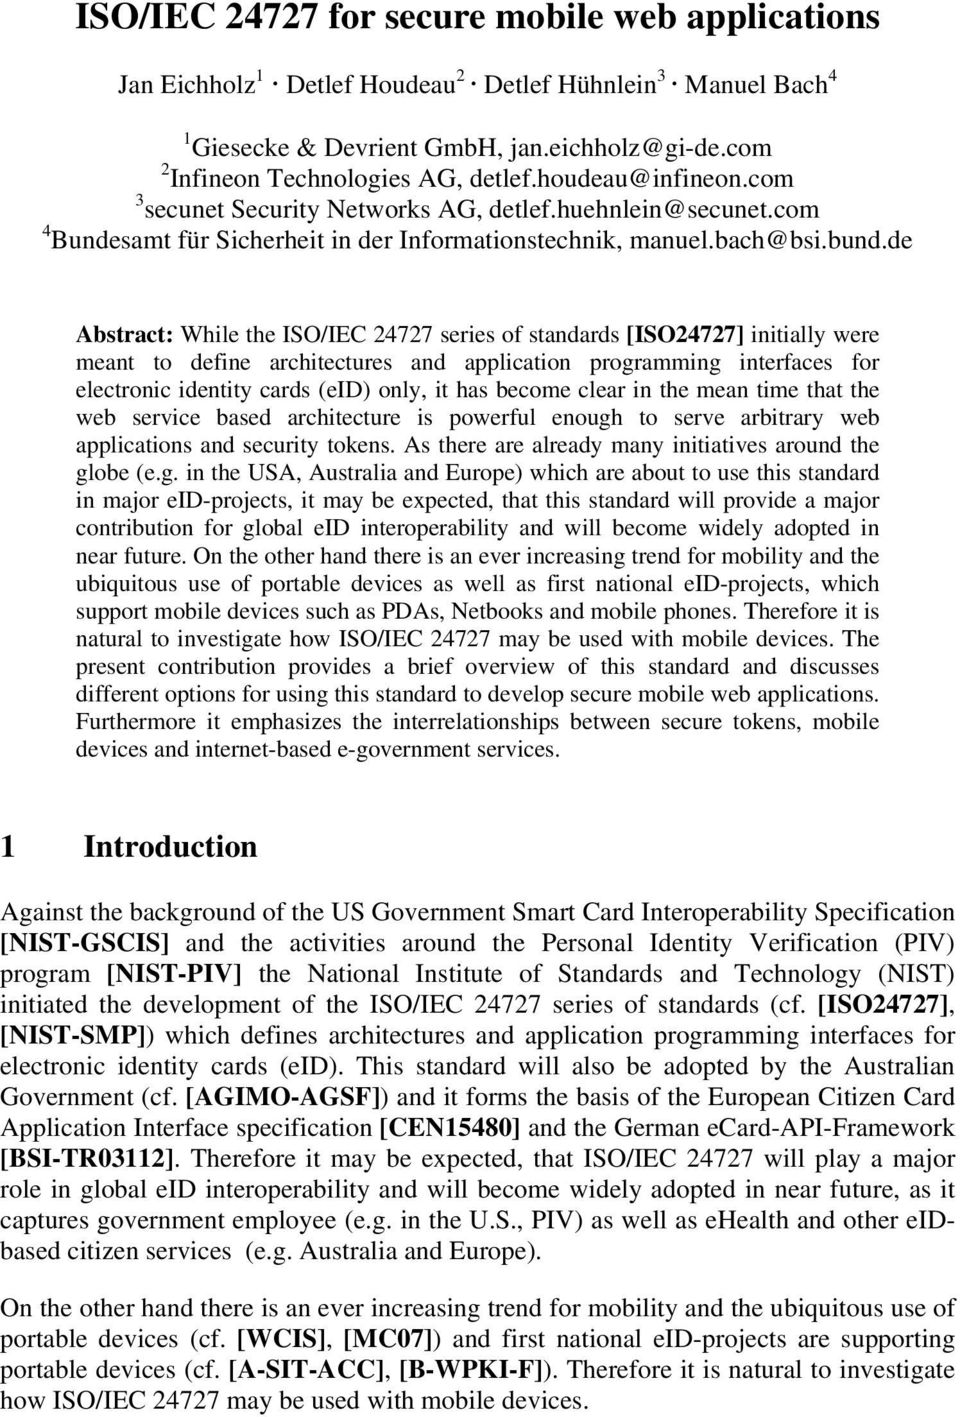 de Abstract: While the ISO/IEC 24727 series of standards [ISO24727] initially were meant to define architectures and application programming interfaces for electronic identity cards (eid) only, it